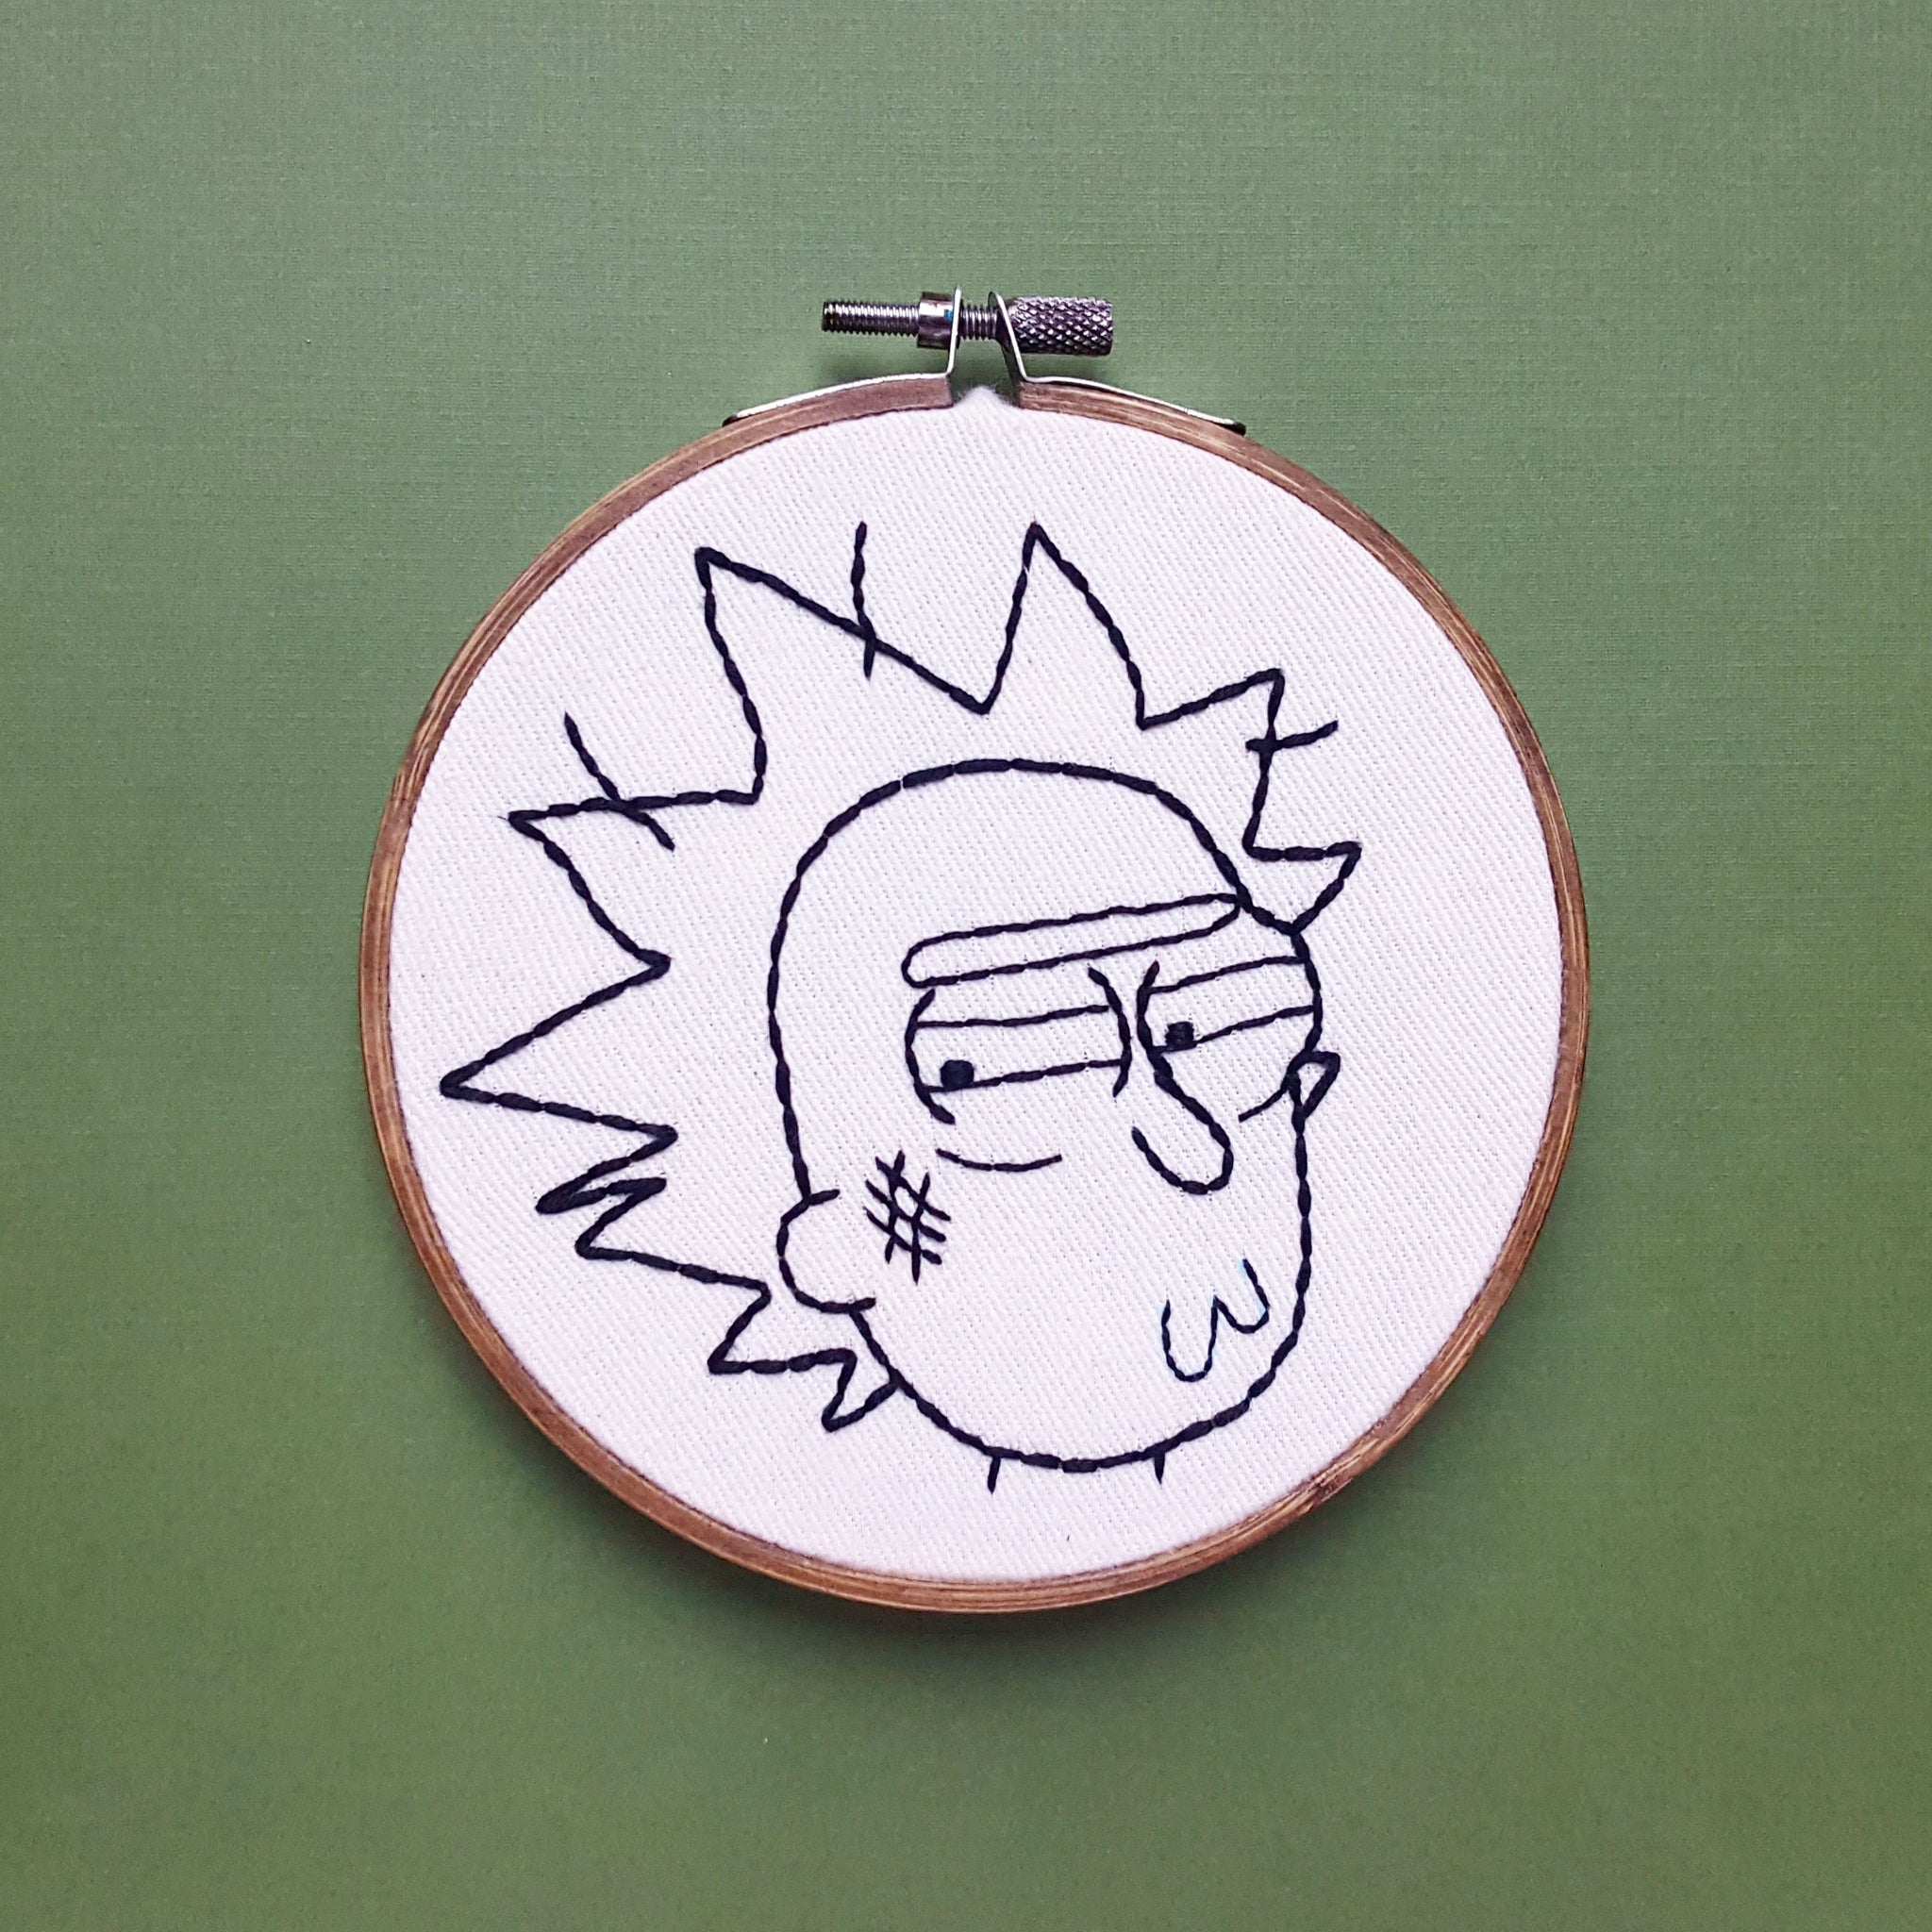 30 Days of Rickspressions - Day 4